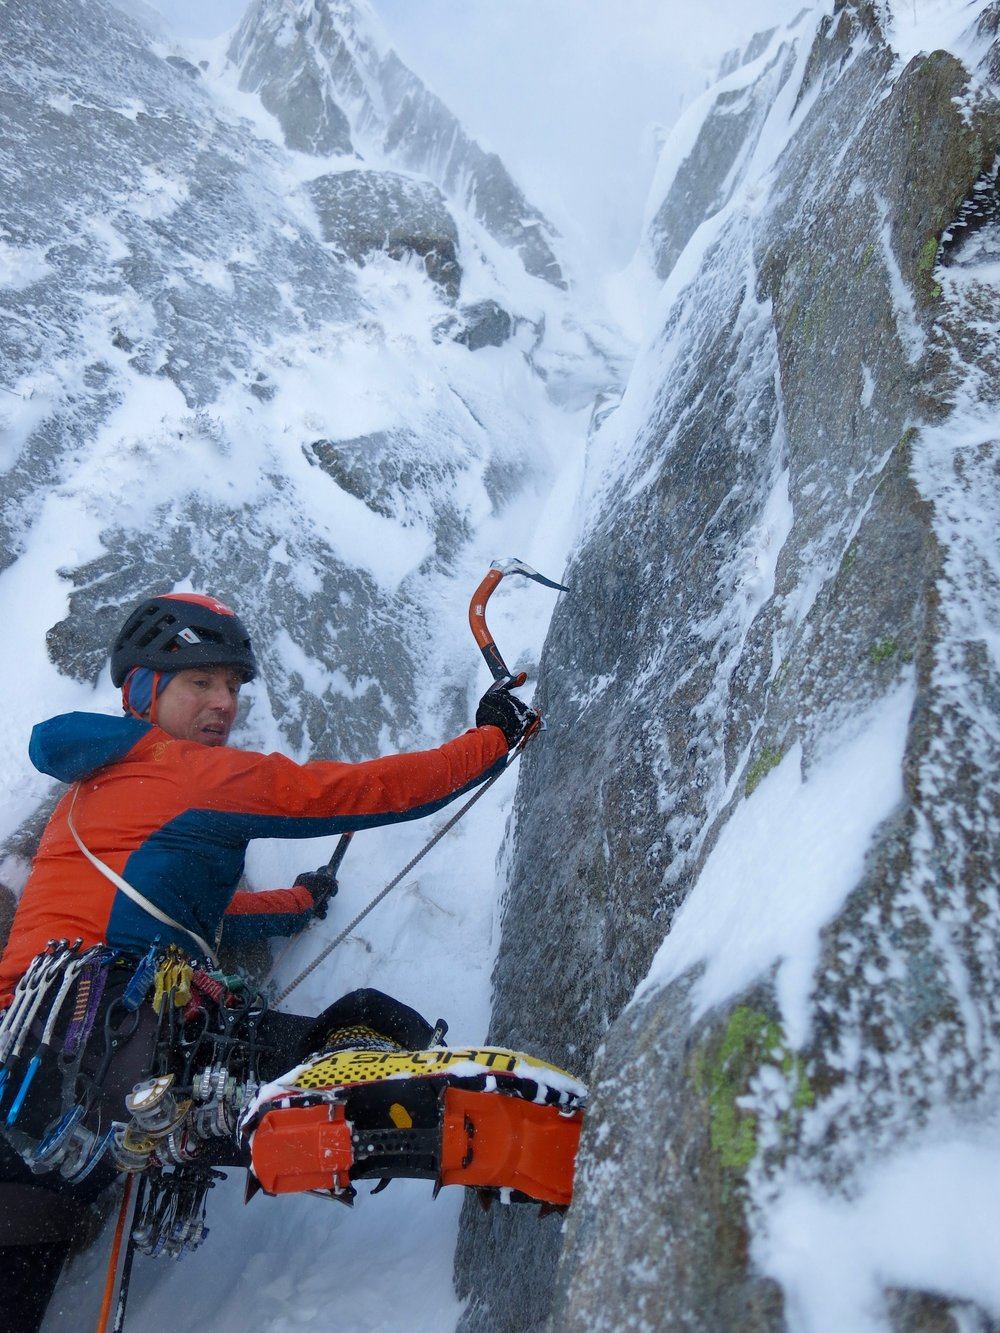 Heirloom VI 6, Lake District, UK, wearing G5s. Photo: Andy Clarke